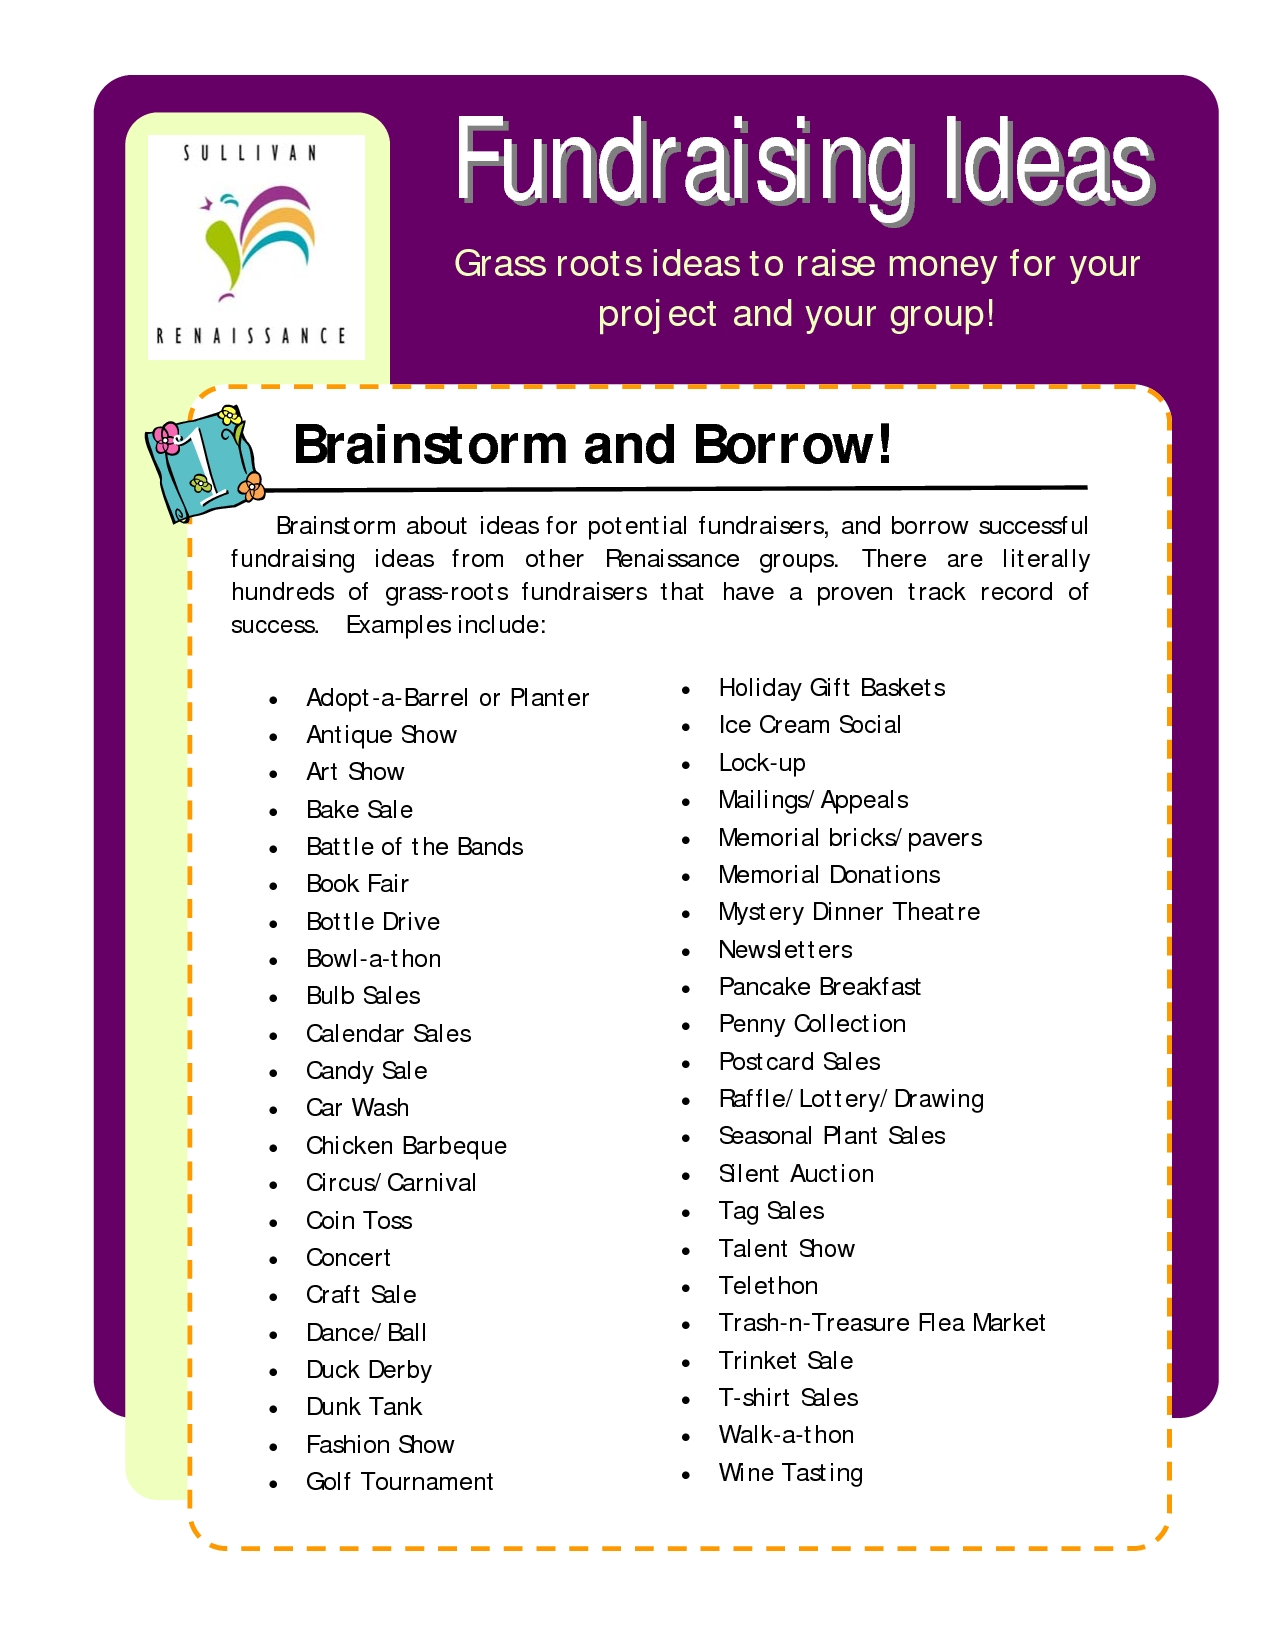 10 Famous Fundraising Ideas For School Clubs fundraising ideas grass roots ideas to raise money for your cause 12 2020